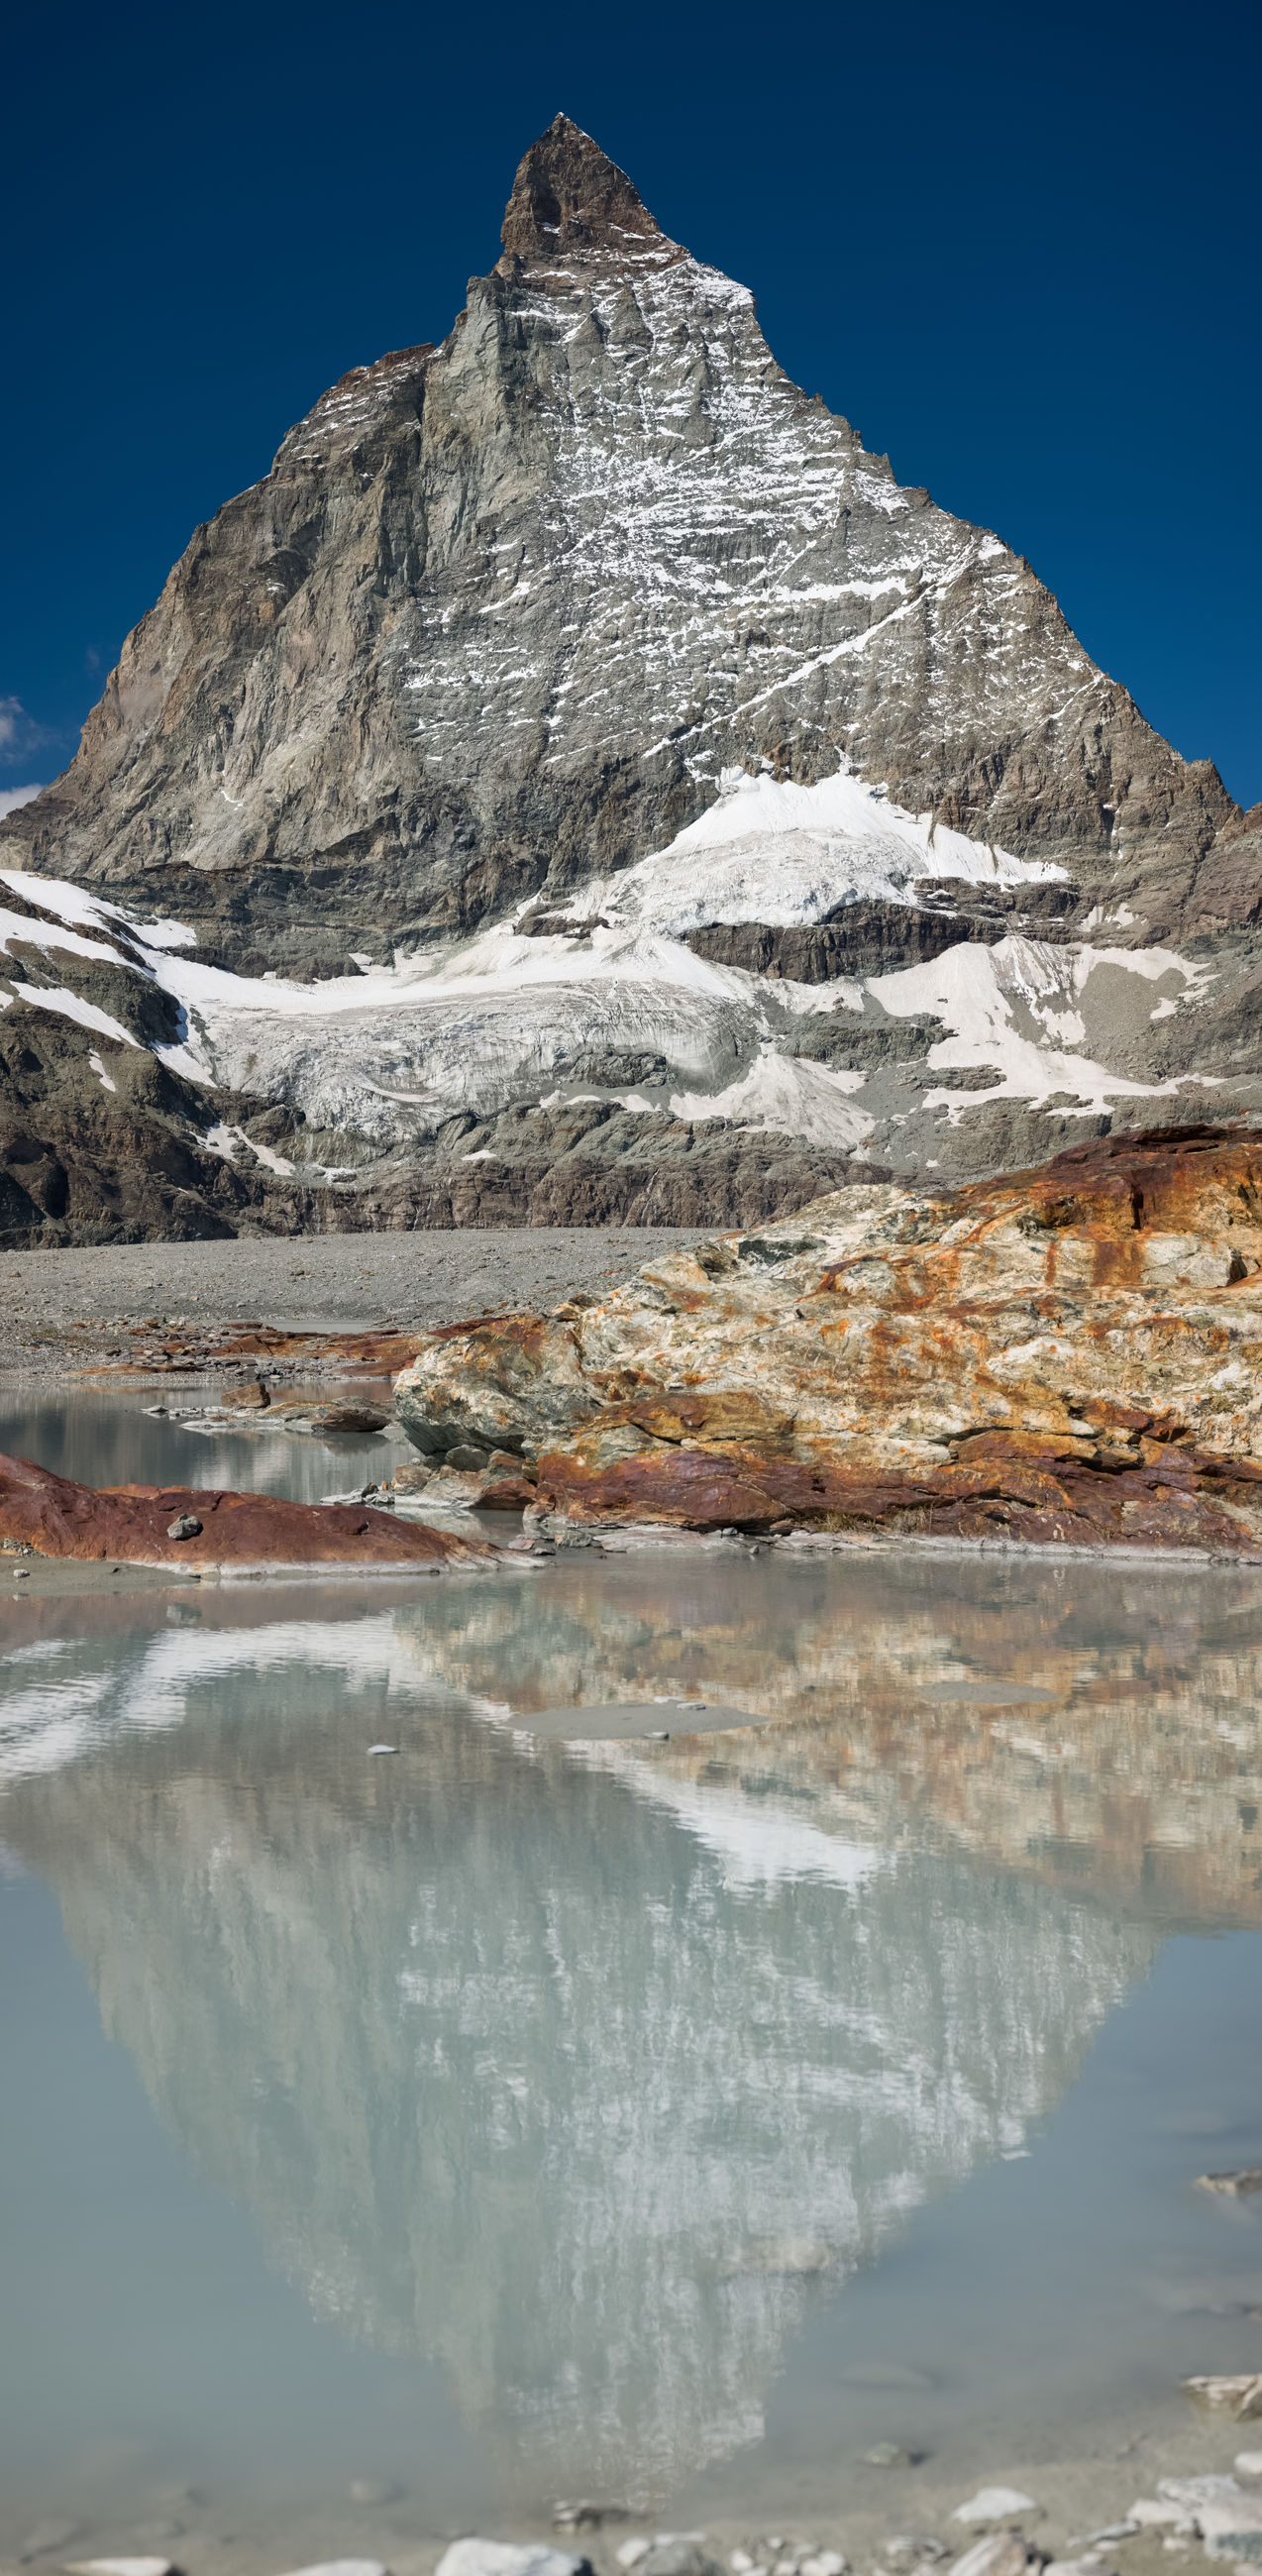 mountain, water, cold temperature, snow, scenics - nature, environment, beauty in nature, winter, landscape, nature, sky, ice, reflection, mountain range, no people, glacier, travel destinations, lake, frozen, tranquility, tranquil scene, blue, land, travel, snowcapped mountain, day, outdoors, clear sky, non-urban scene, rock, lagoon, tourism, mountain peak